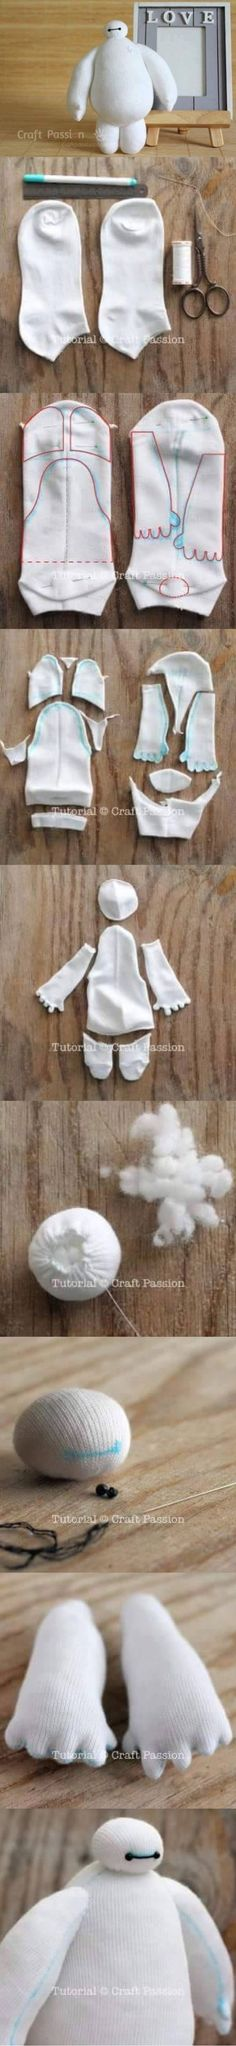 DIY Baymax stuffed animal...